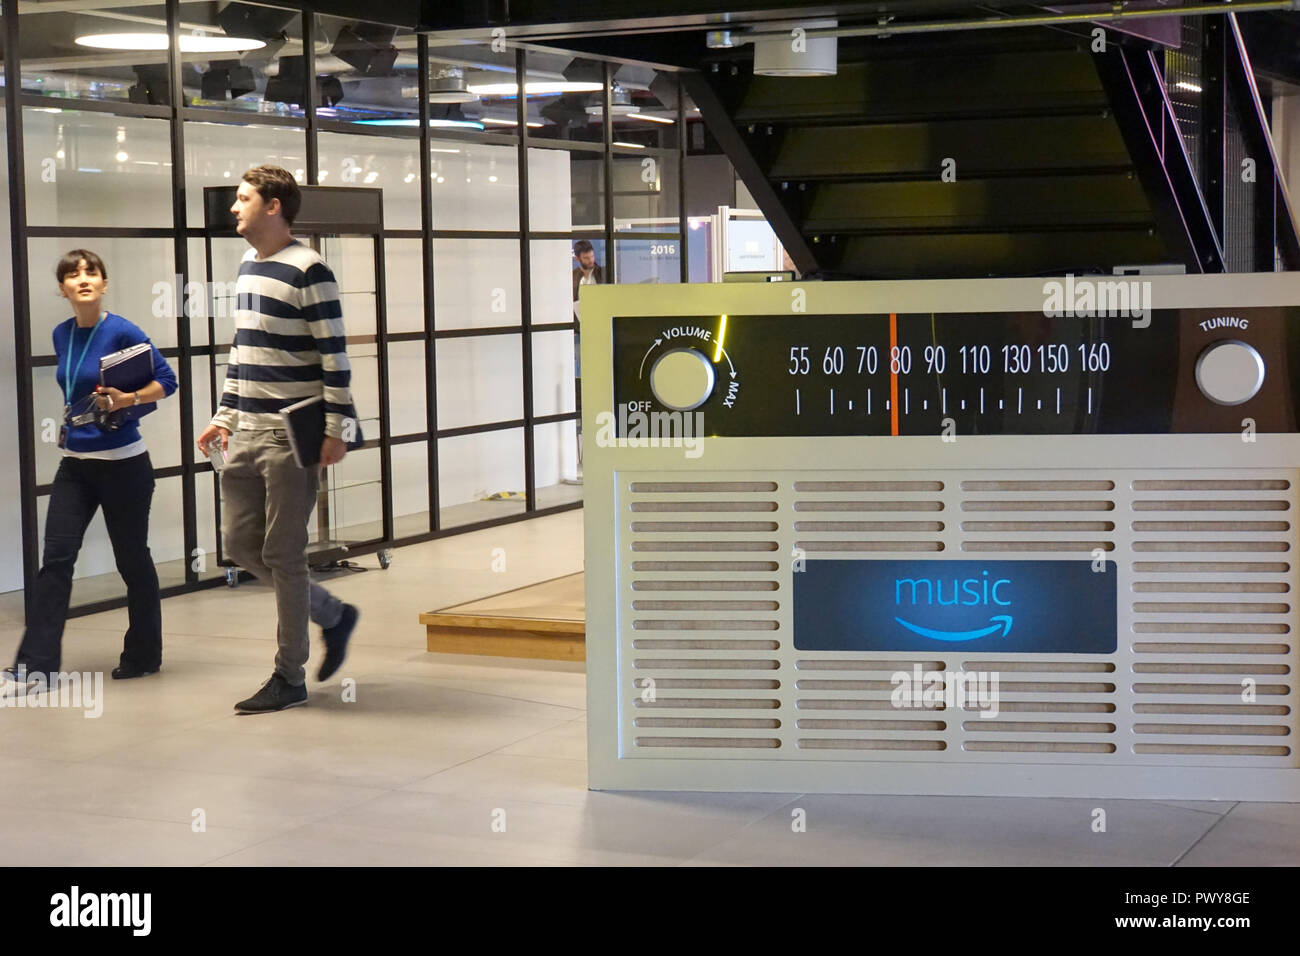 "London, UK. 18th Oct, 2018. Amazon employees walk past an oversized radio model in London's Amazon headquarters that promotes the Amazon Music streaming service. At its ""Innovation Day"", the Group announced that it would expand its development locations in Europe. (Zu dpa ""Amazon is expanding research and development centers in Europe"") Credit: Christoph Dernbach/dpa/Alamy Live News Stock Photo"